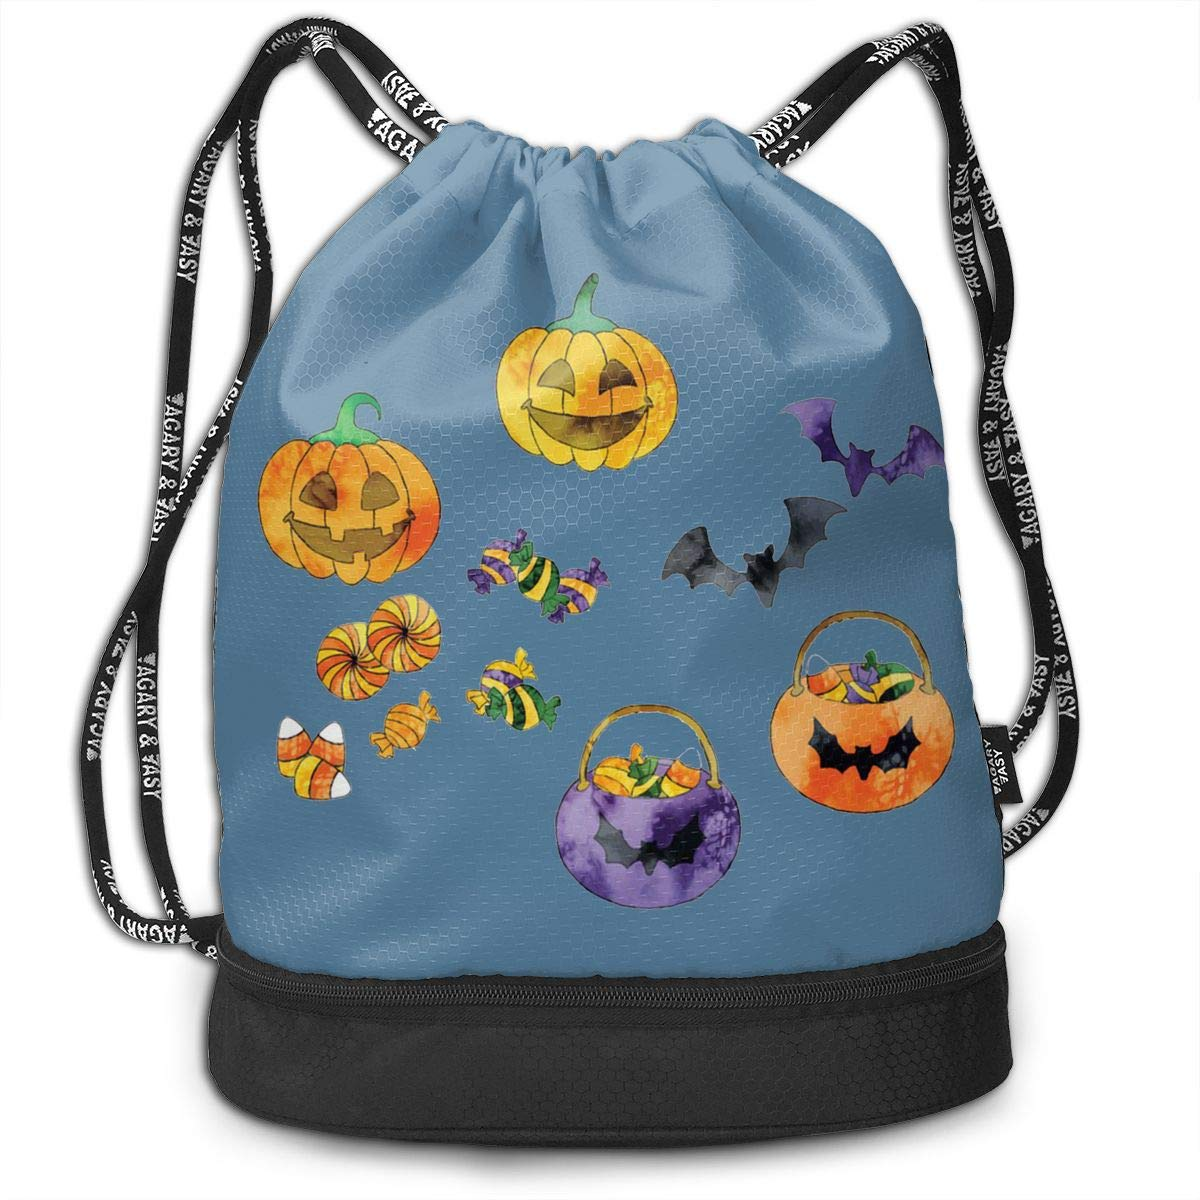 HUOPR5Q Halloween Pumpkin Bat Drawstring Backpack Sport Gym Sack Shoulder Bulk Bag Dance Bag for School Travel